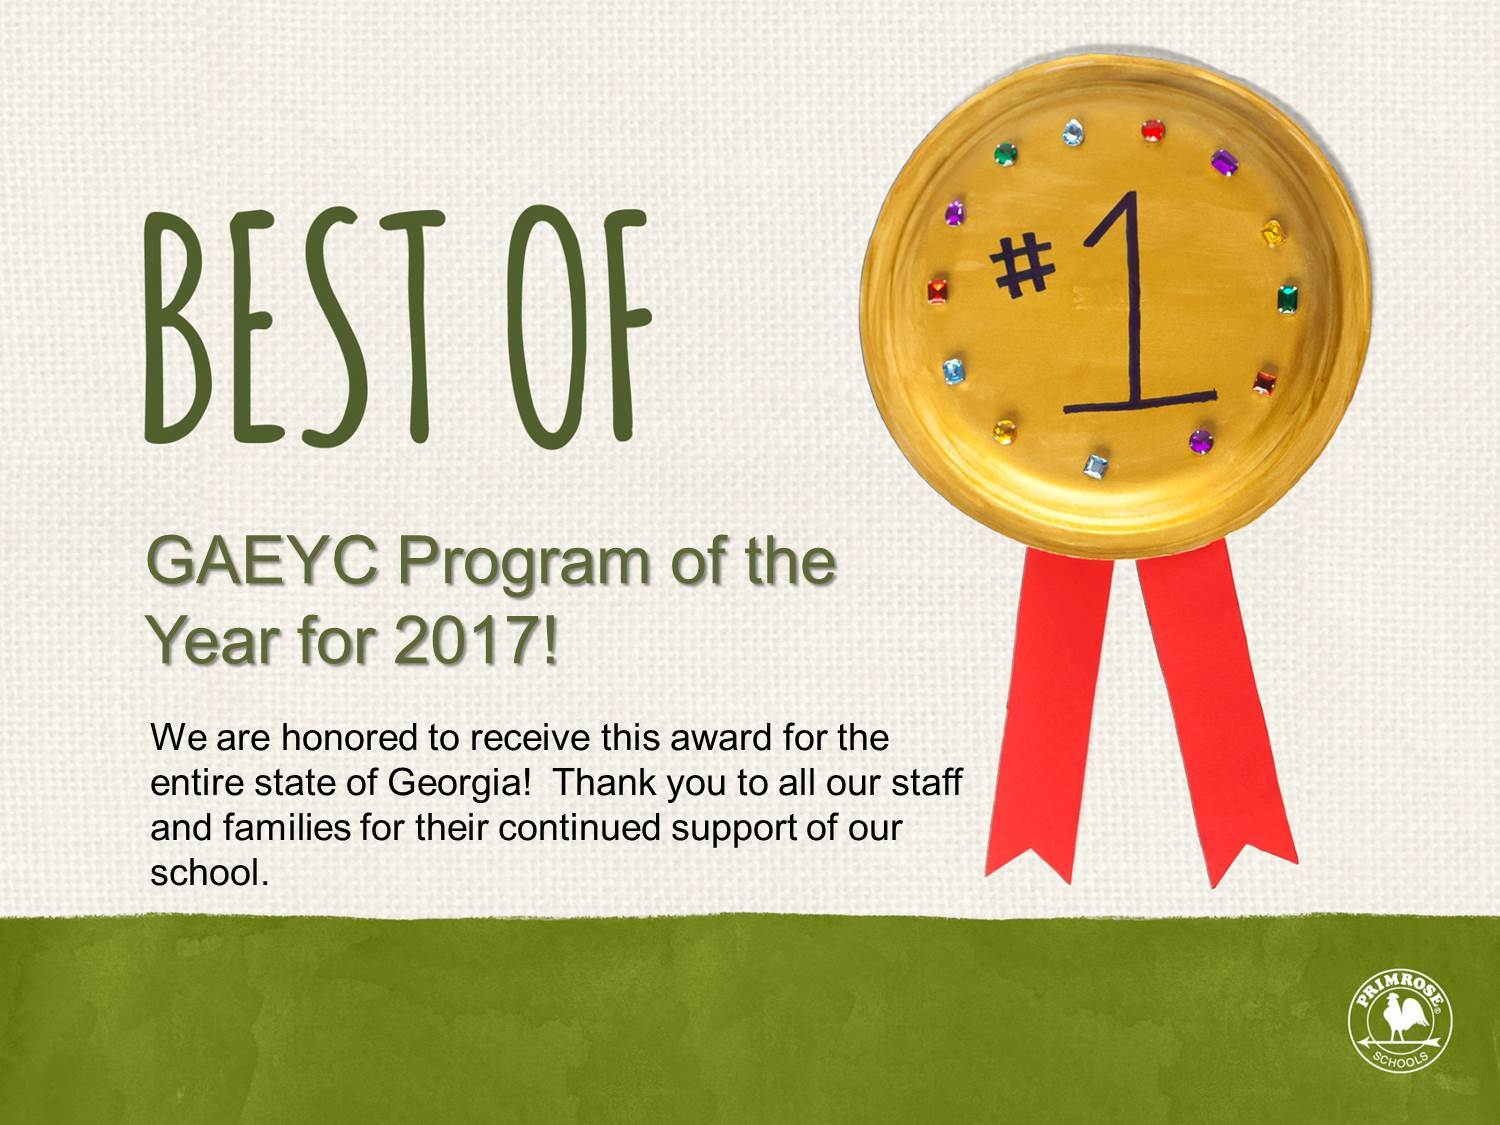 Best of GAEYC program poster thanking everyone who made this possible